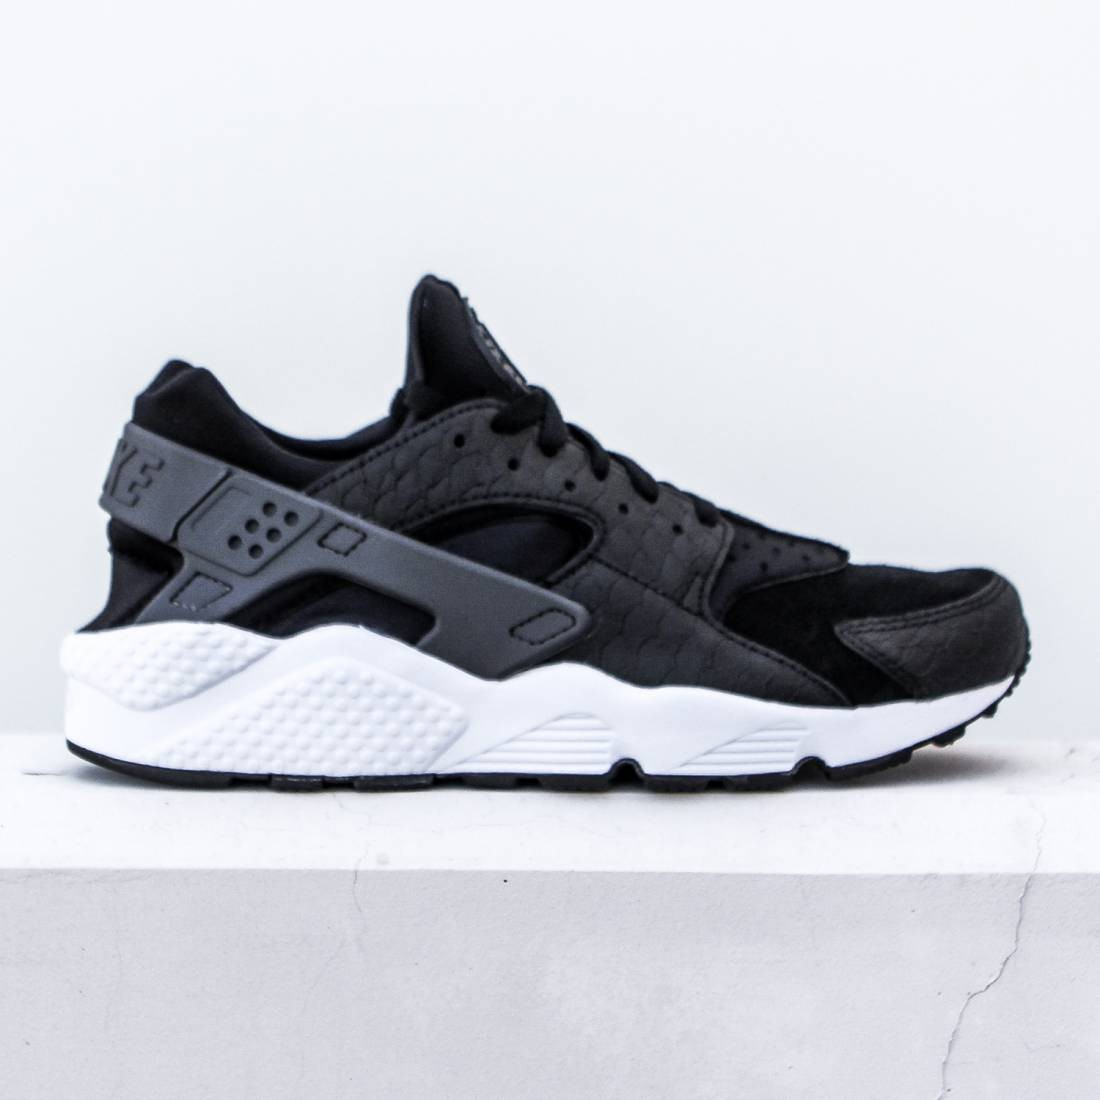 nike huarache black white grey